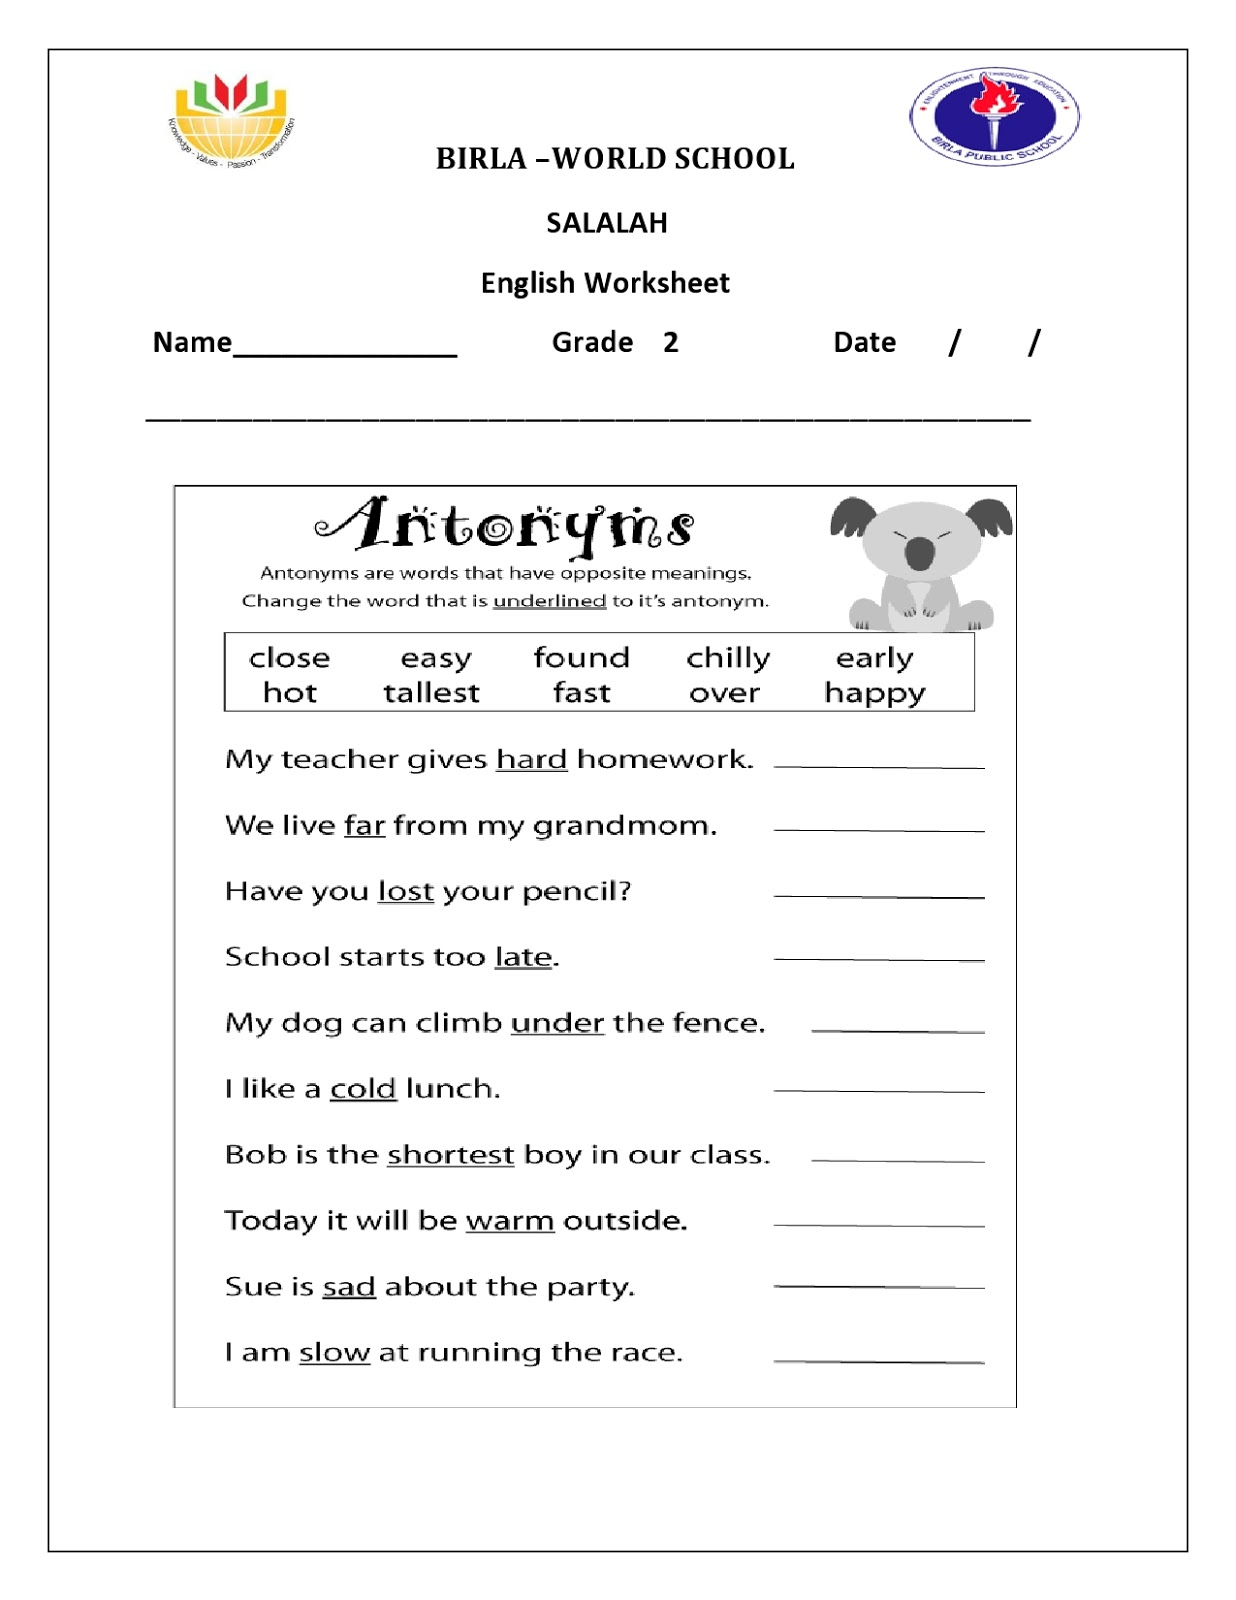 Birla World School Oman Homework For Grade 2 B On 17 3 16